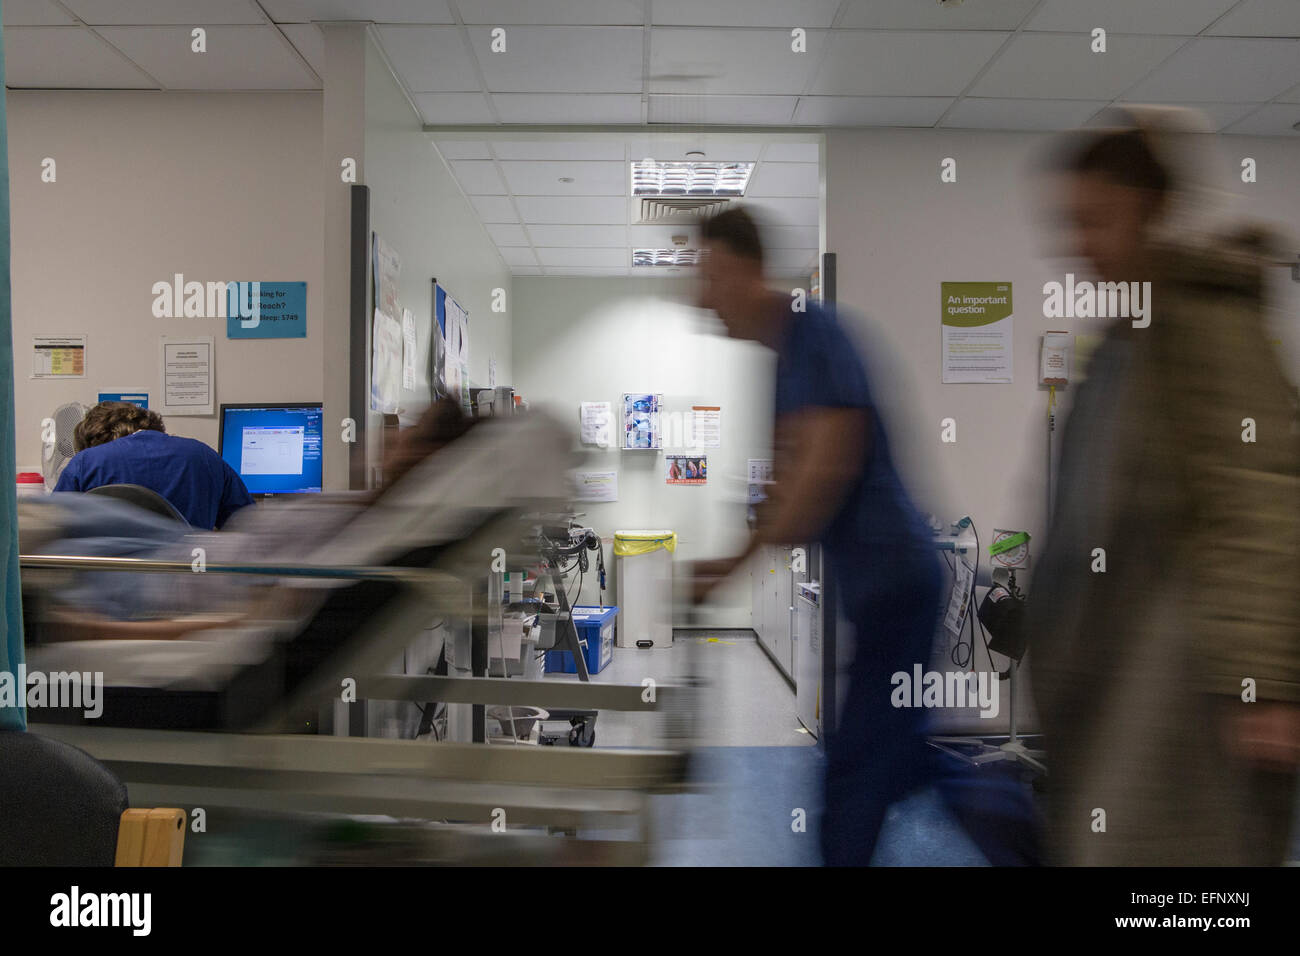 A busy hospital with doctors, nurses and staff busy at work in an accident and emergency ward in a British hospital - Stock Image